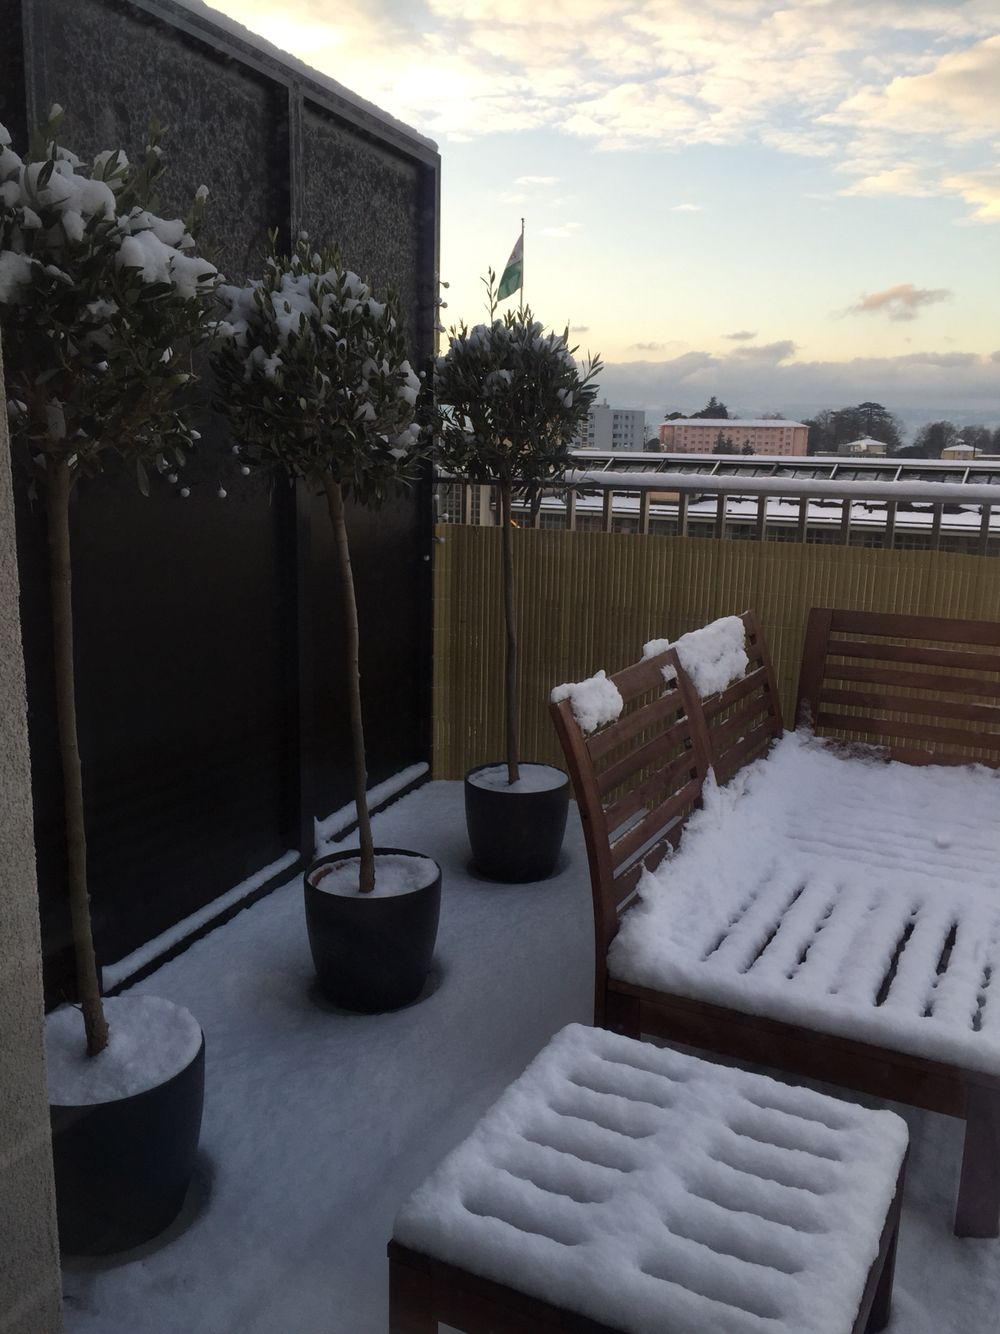 First snow on our balcony! #lausanne #suisse